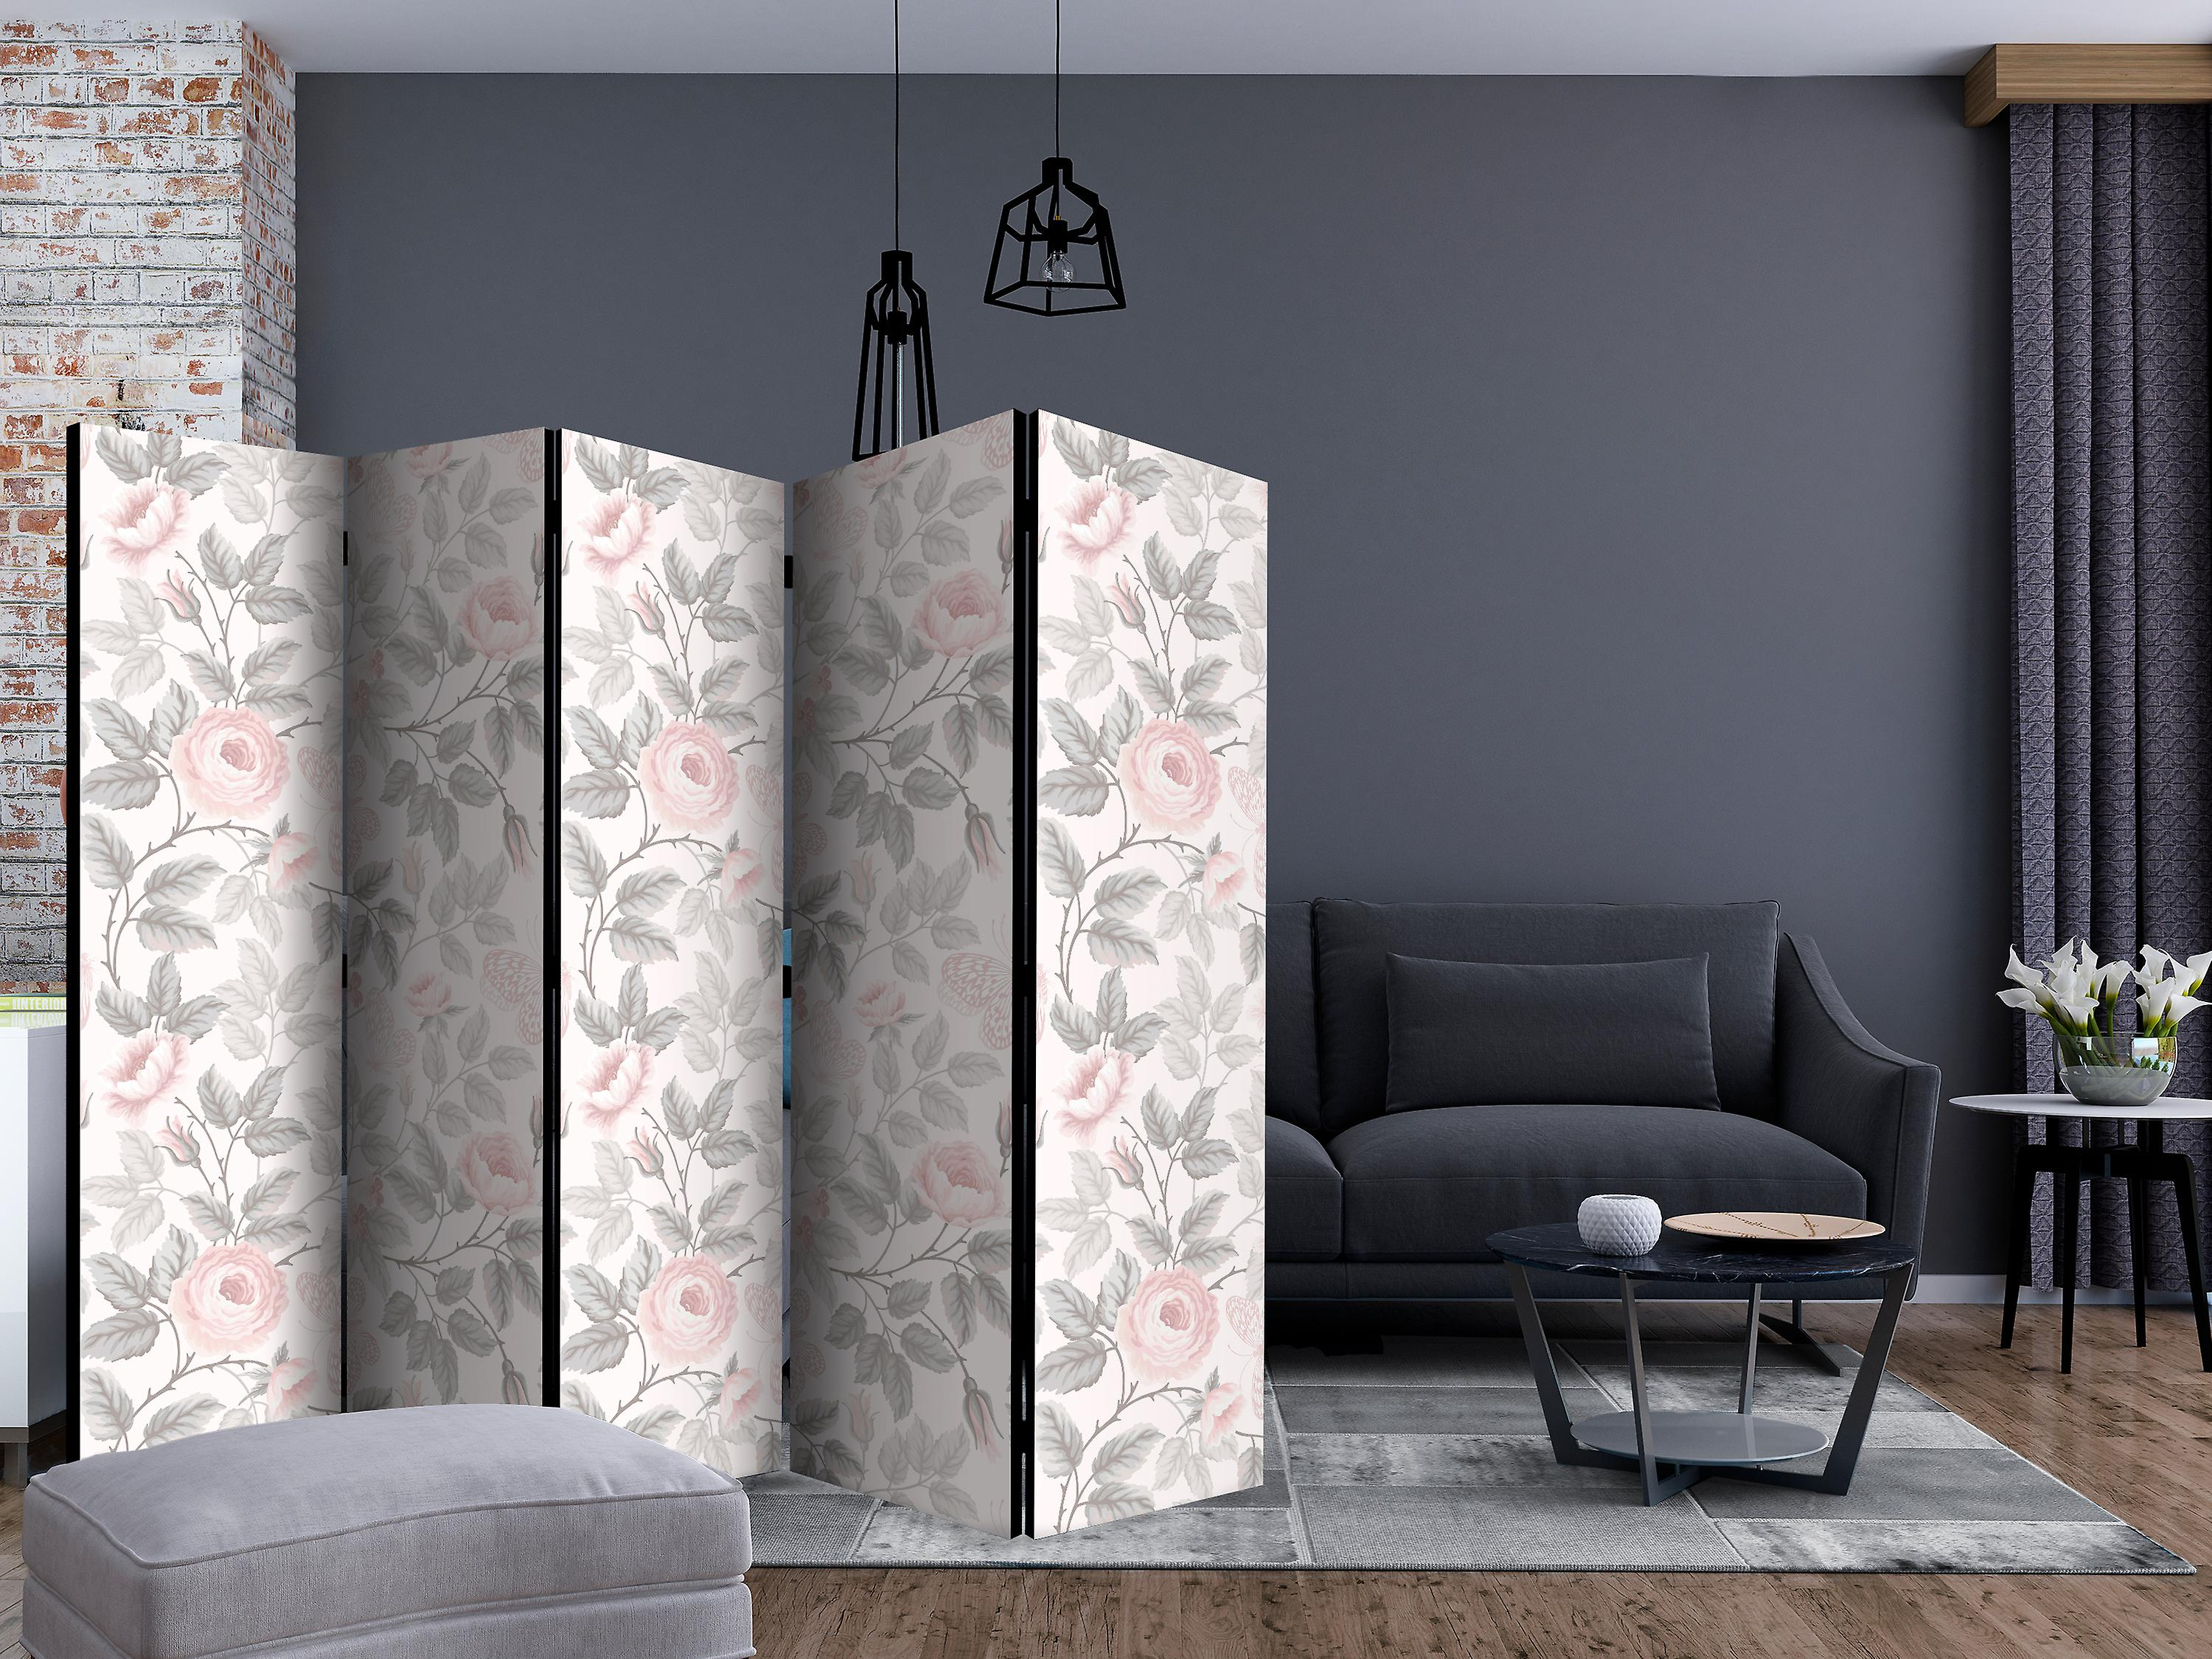 Paravent 5 volets - Watercolor Roses [Room Dividers]